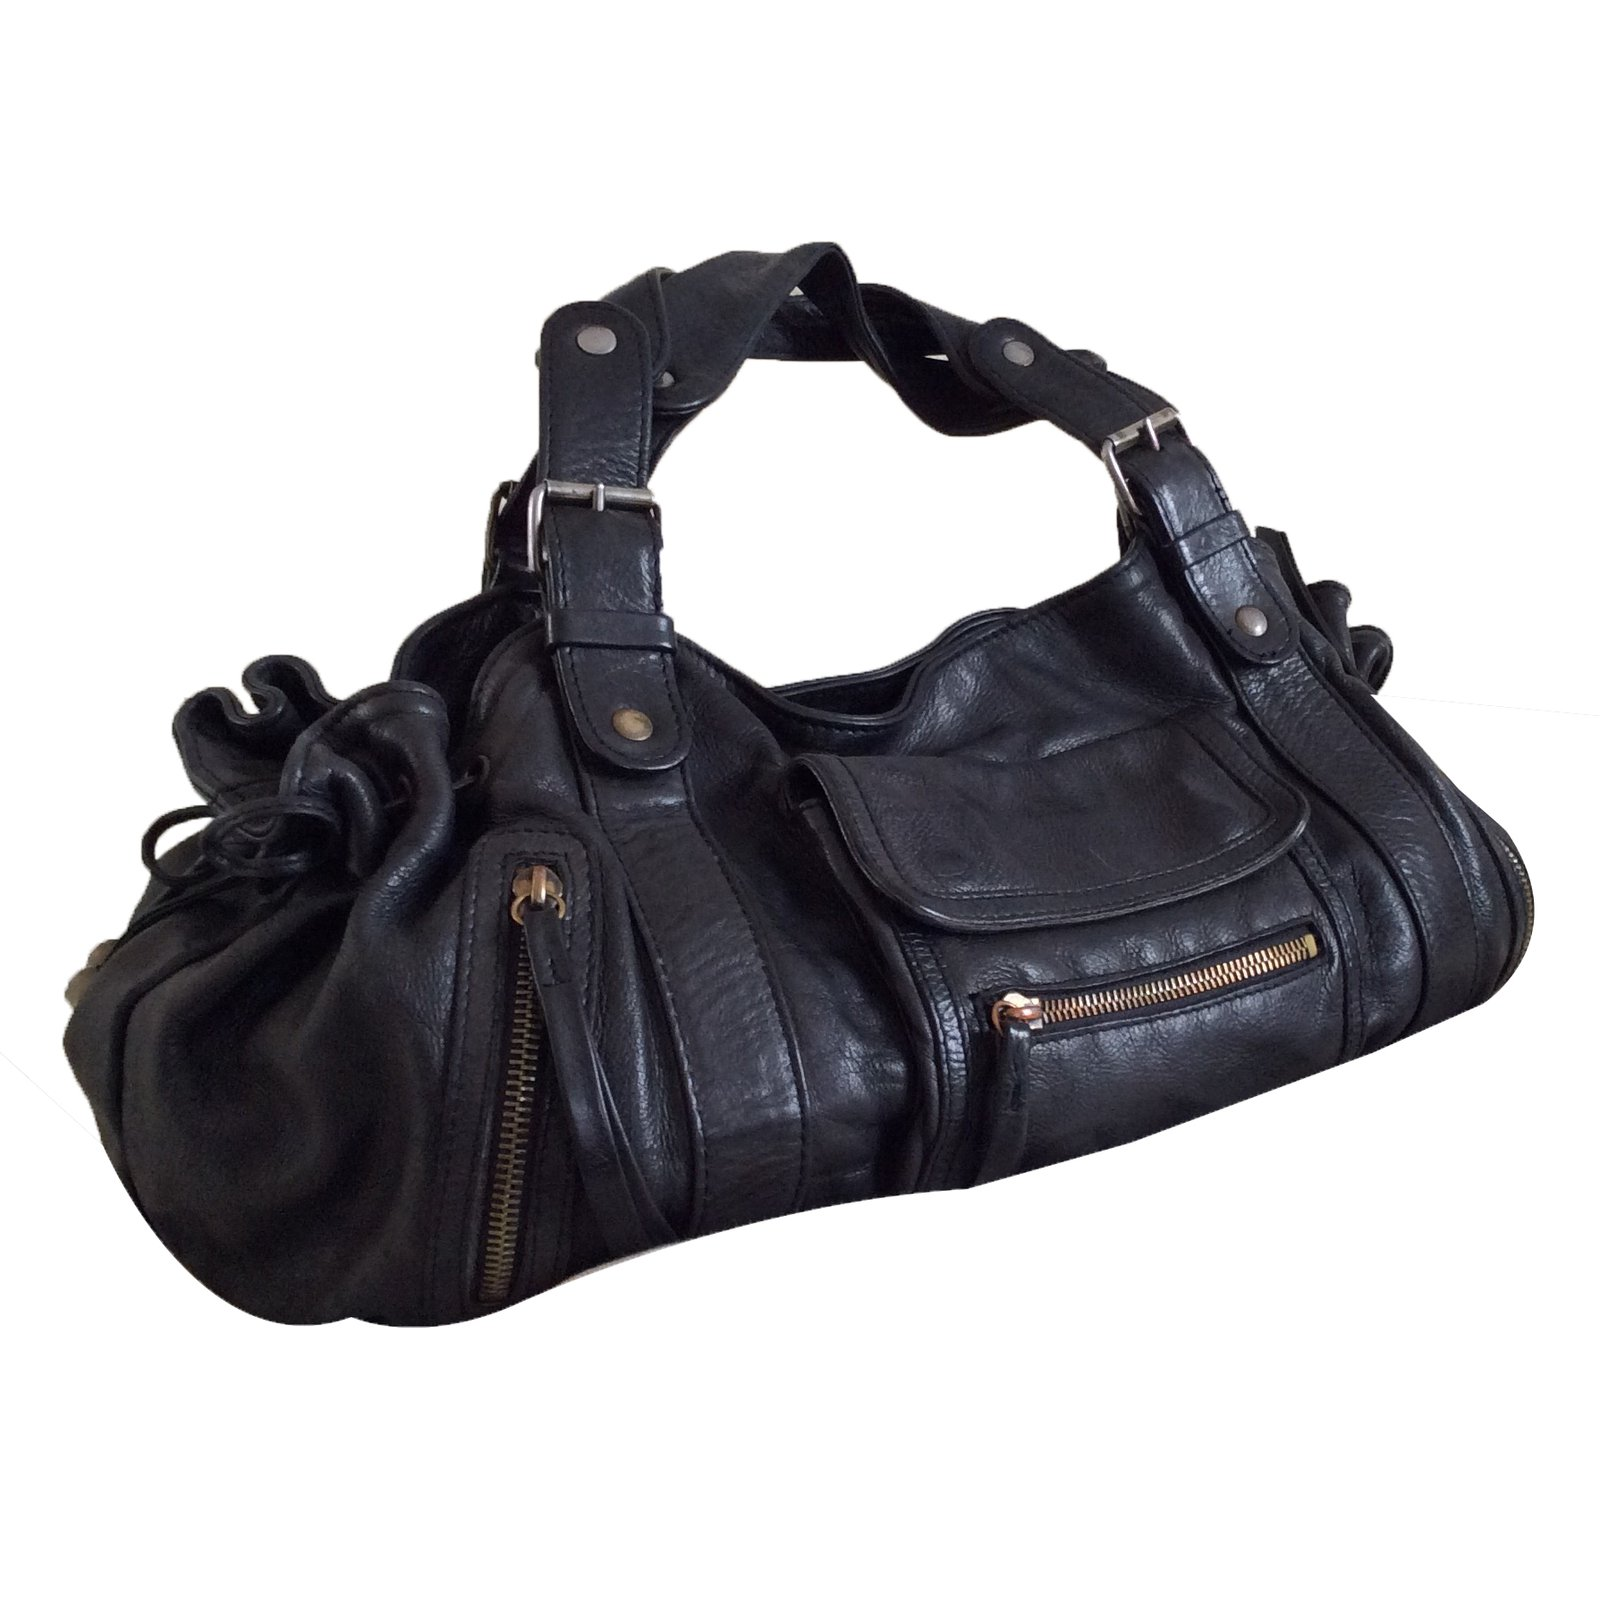 Gerard Darel Handbags Leather Black Ref 36428